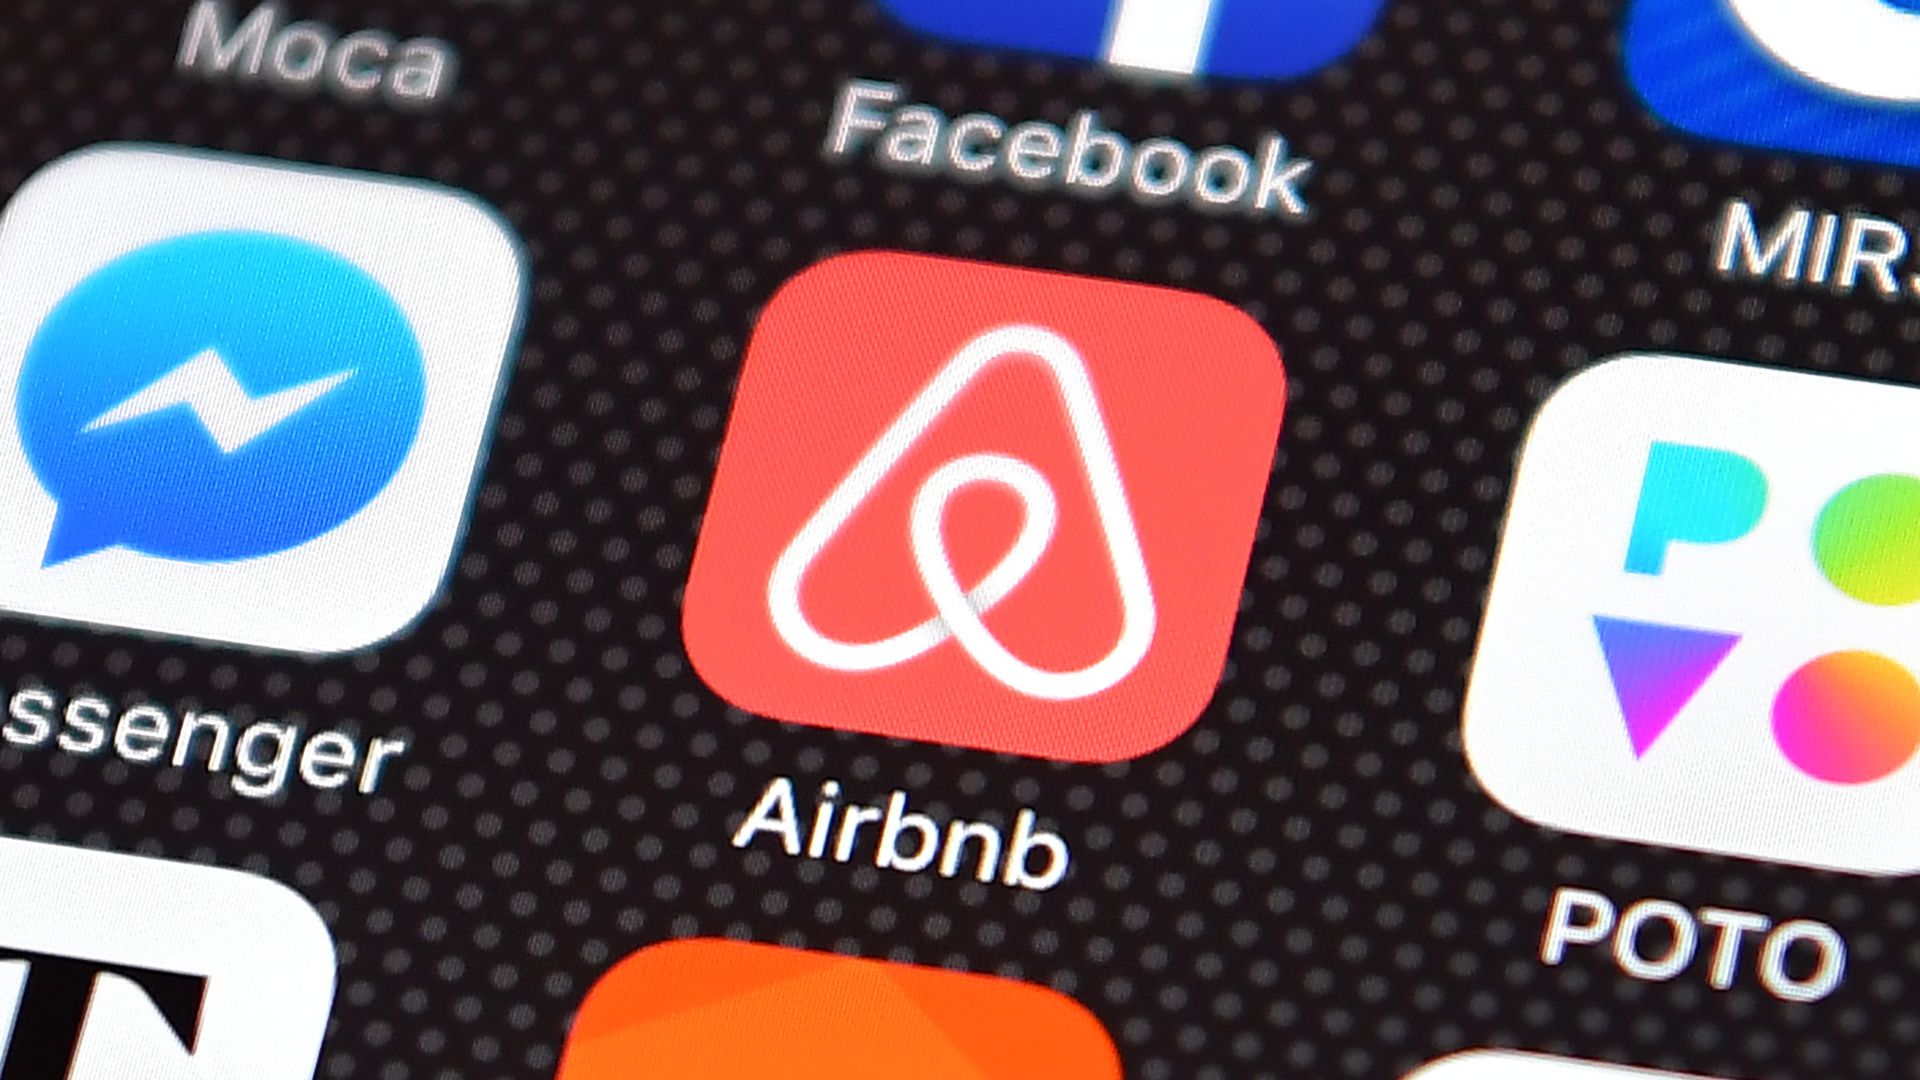 Airbnb app logo on smartphone.